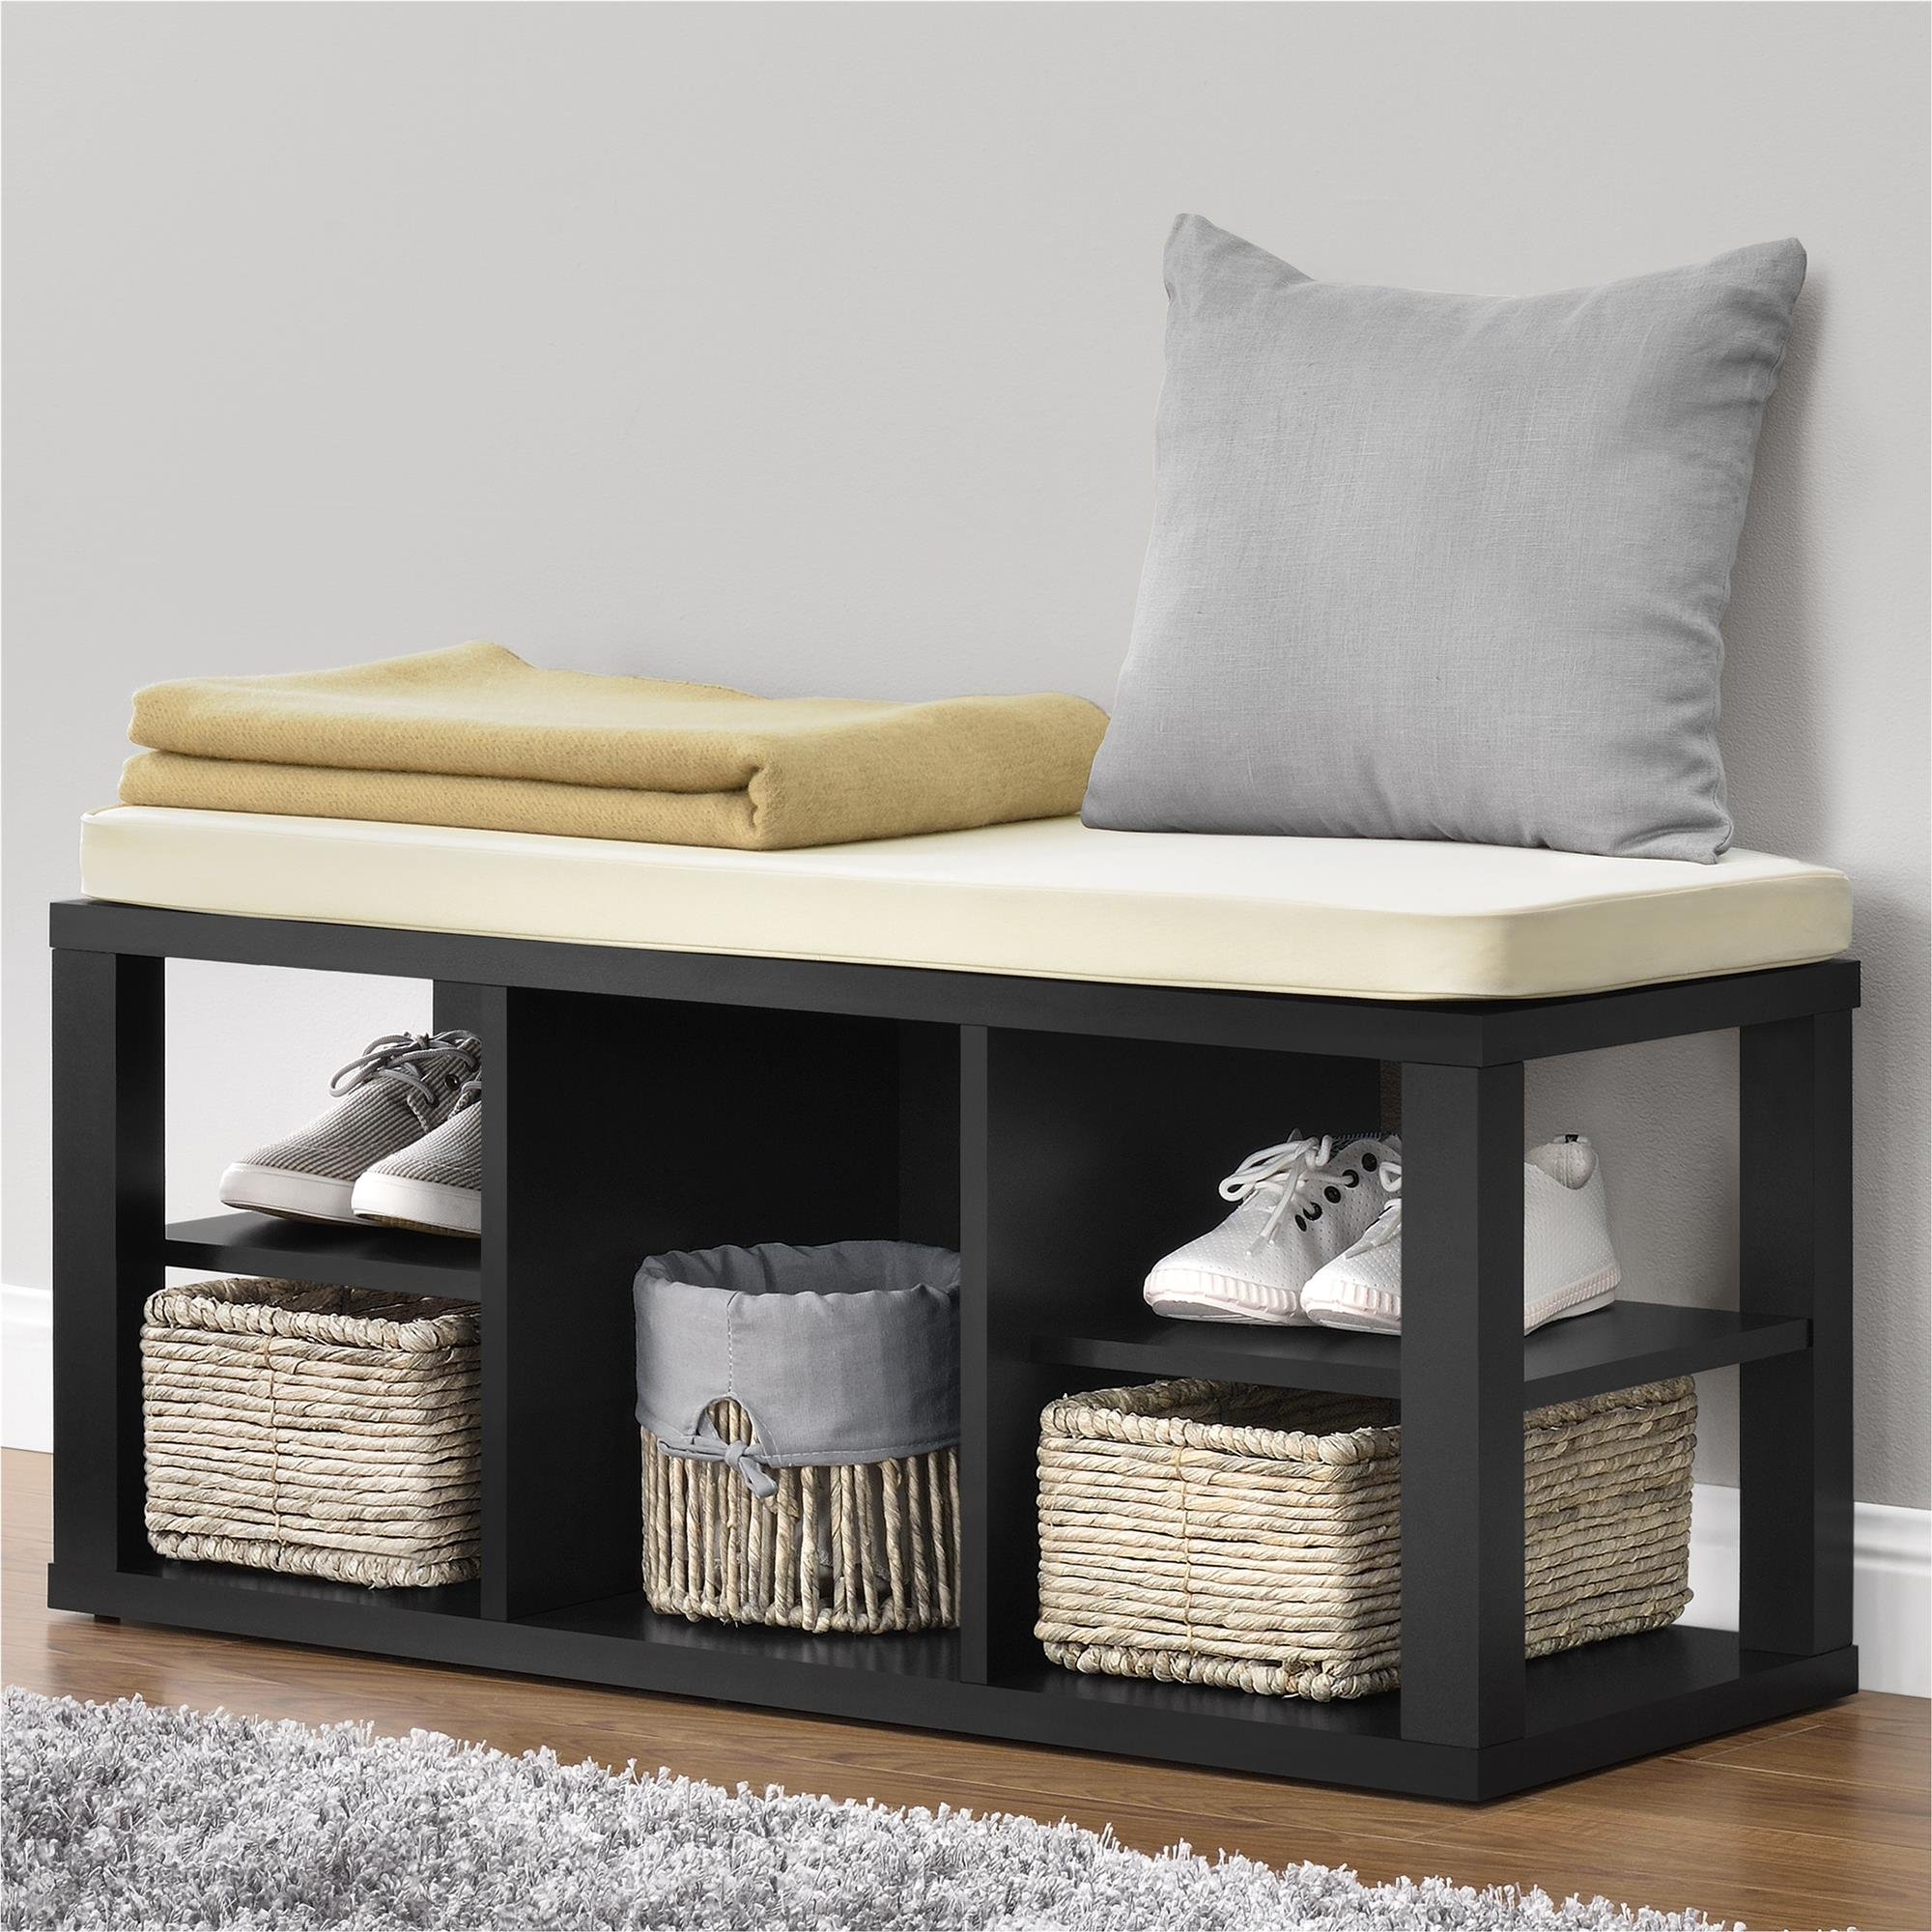 Ameriwood Home Parsons Storage Bench, Black by Ameriwood Home (Image #7)